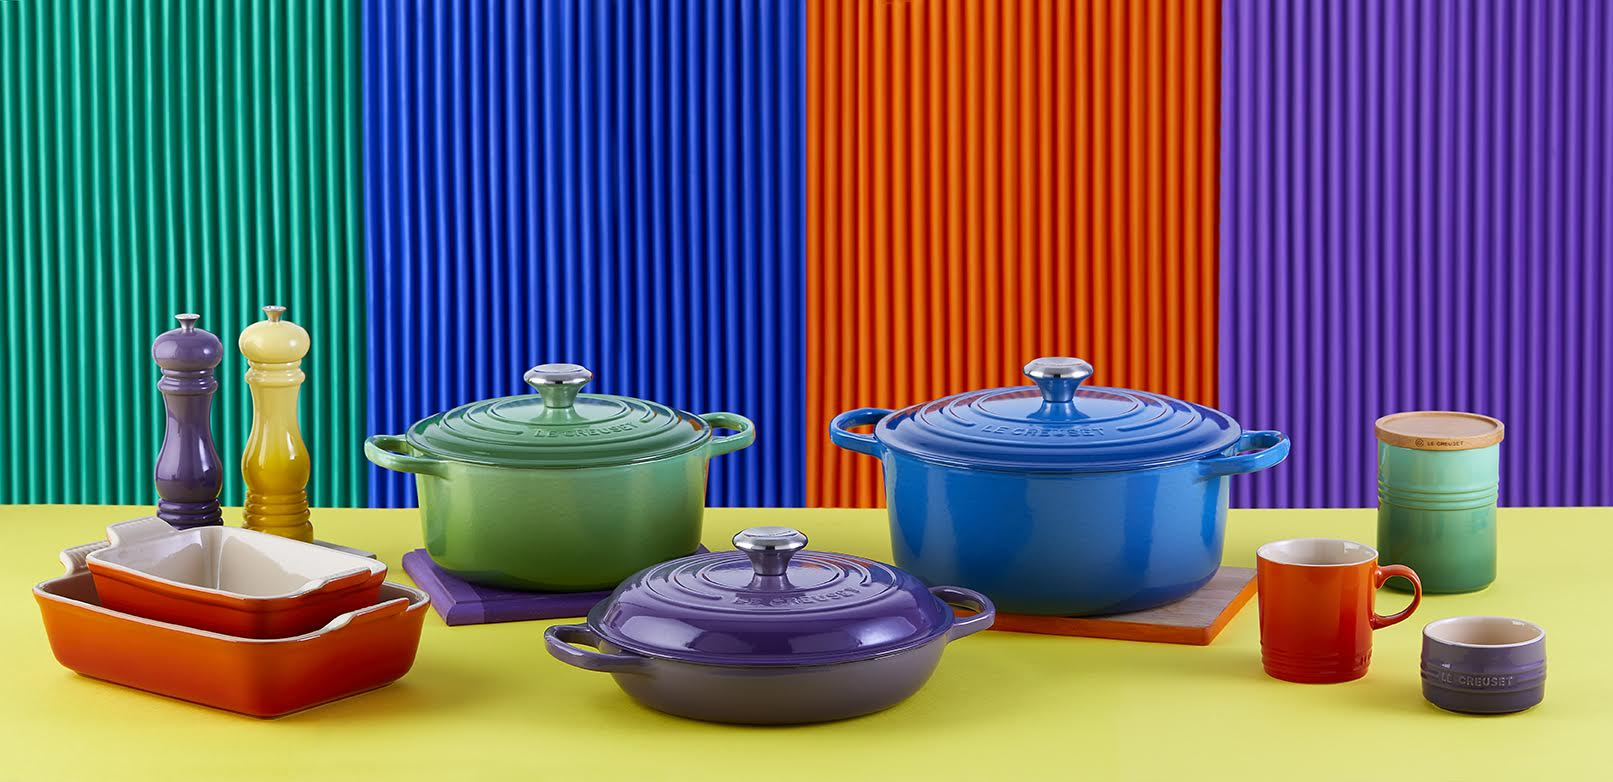 LeCreuset's Contemporary Kitchen: Transforming Your Cooking Experience